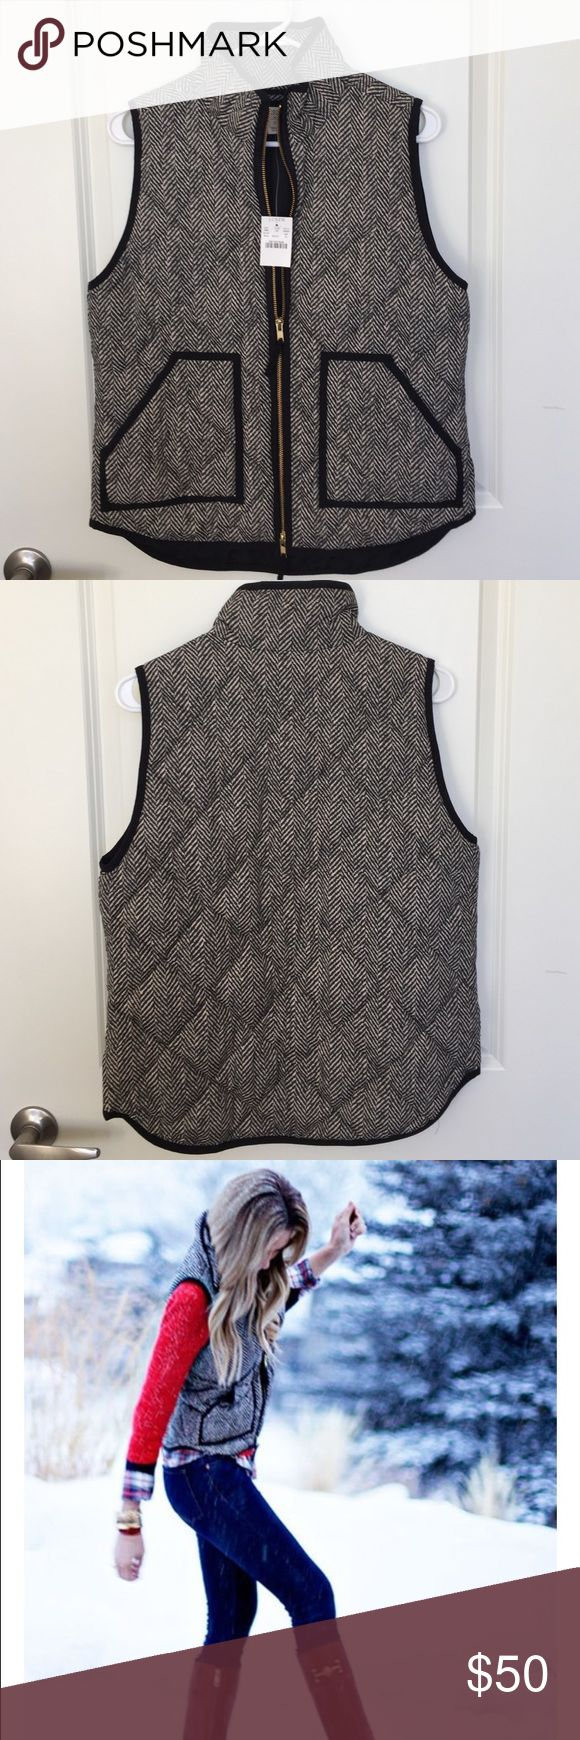 New!! J Crew herringbone puffer vest New with tags! J Crew herringbone puffer vest. Size Small- does run a little big. (I live in the desert and don't have many opportunities to wear it.) J. Crew Jackets & Coats Vests